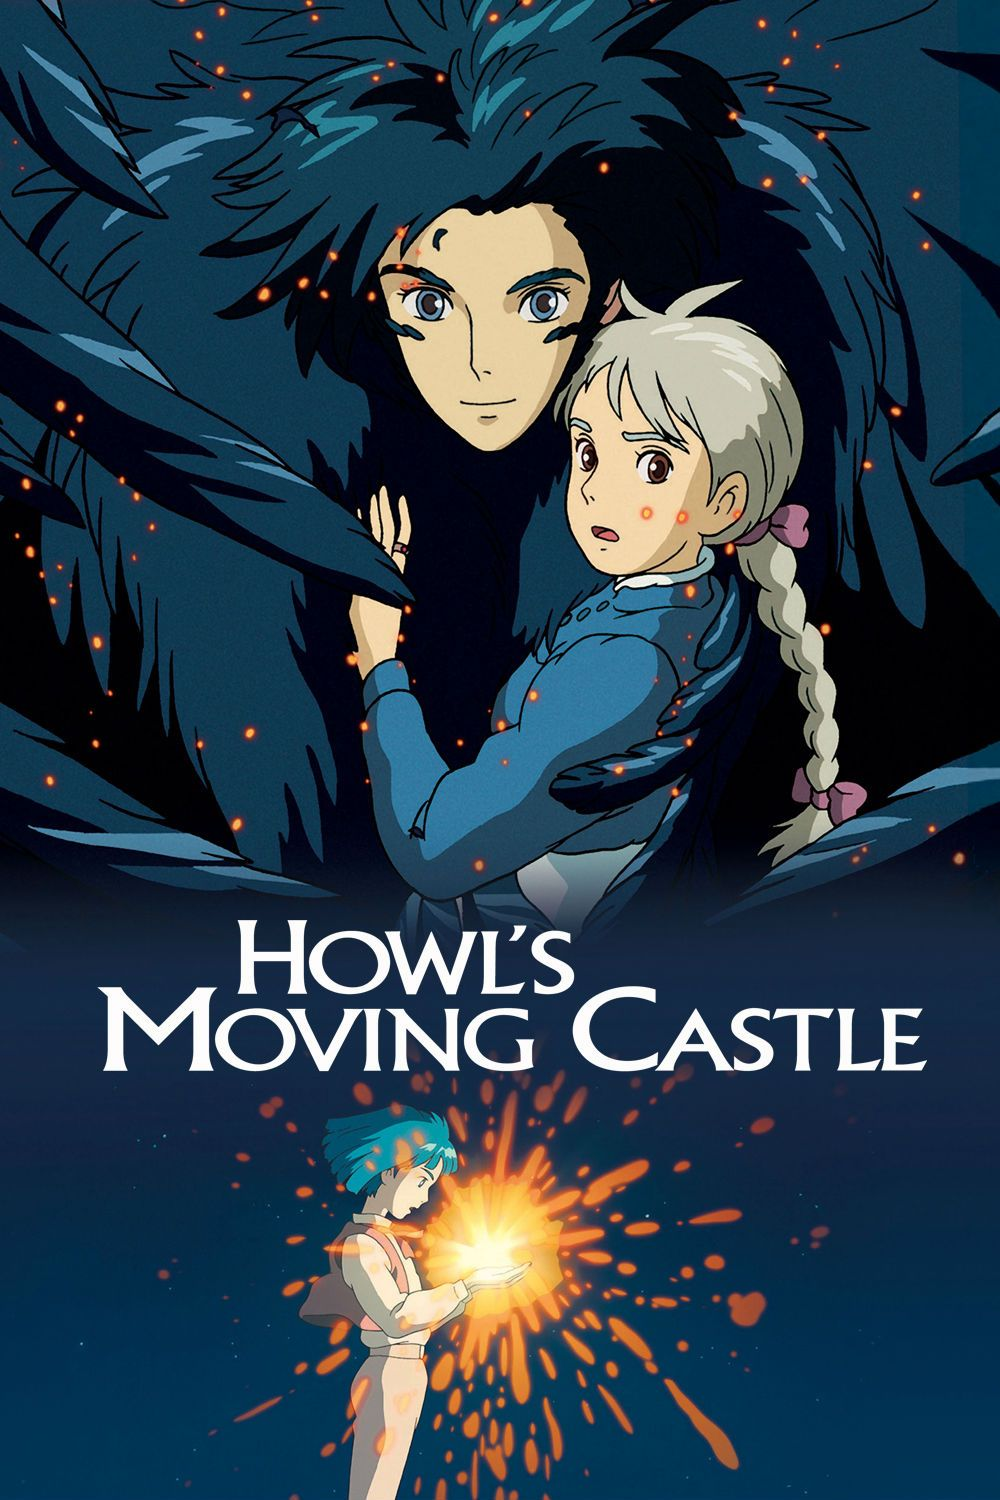 Howl's Moving Castle (2004) Fantasy, Adventure Howl's